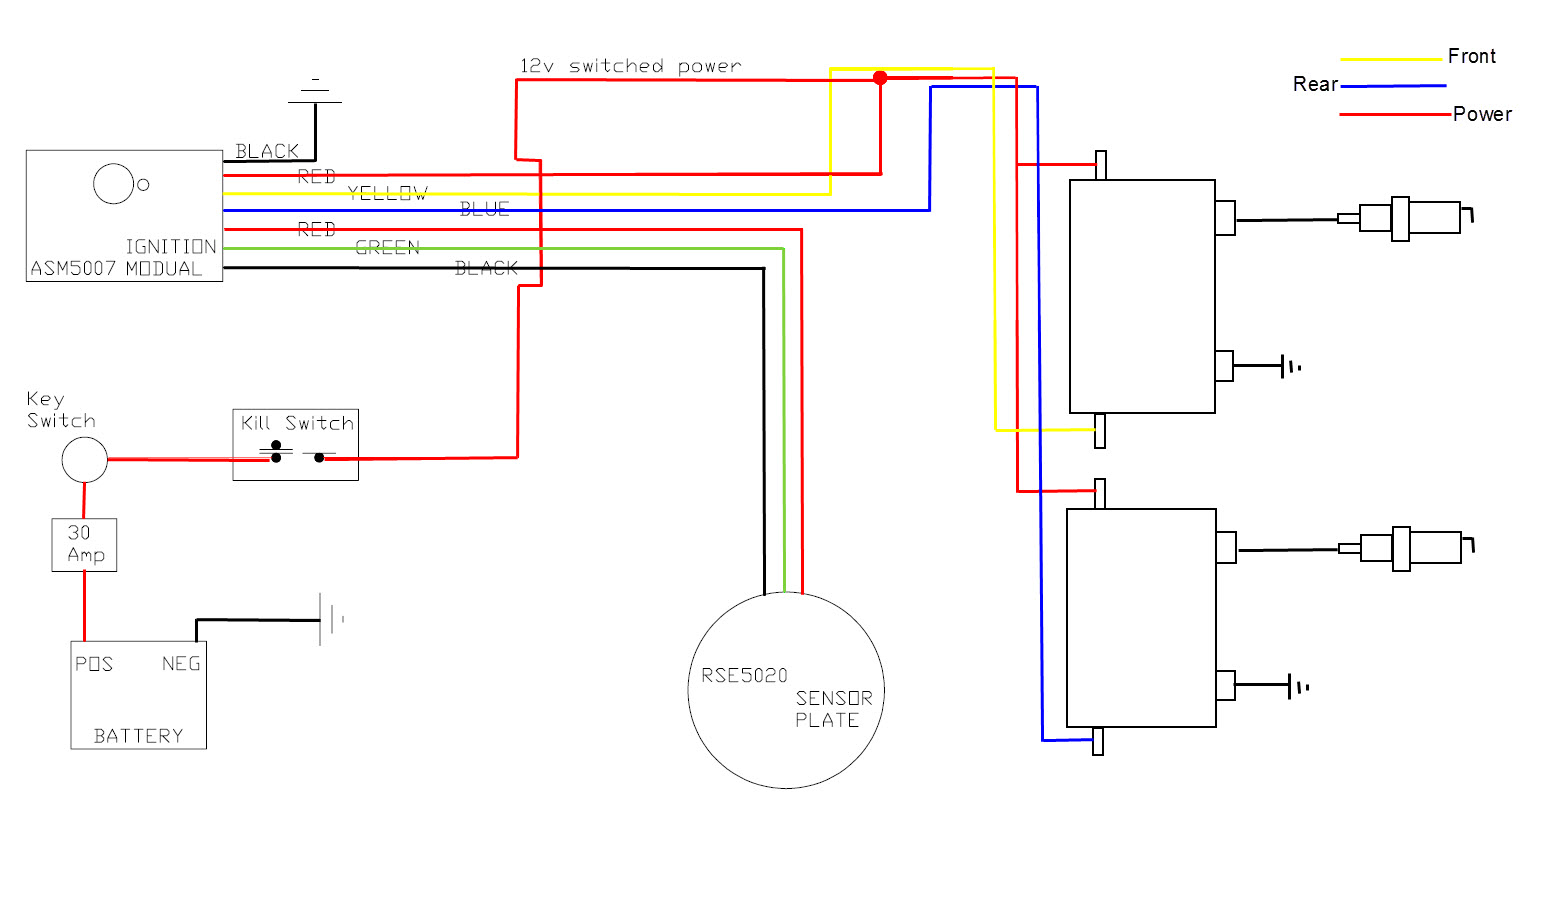 100 Revtech Coil Wiring Diagram | Wiring Liry on ignition module installation, gm distributor diagram, ignition module troubleshooting, ignition module switch, ignition switch diagram, electronic ignition module diagram, ignition module circuit diagram, ignition system, ford distributor diagram, ford ignition coil diagram, ignition module parts,